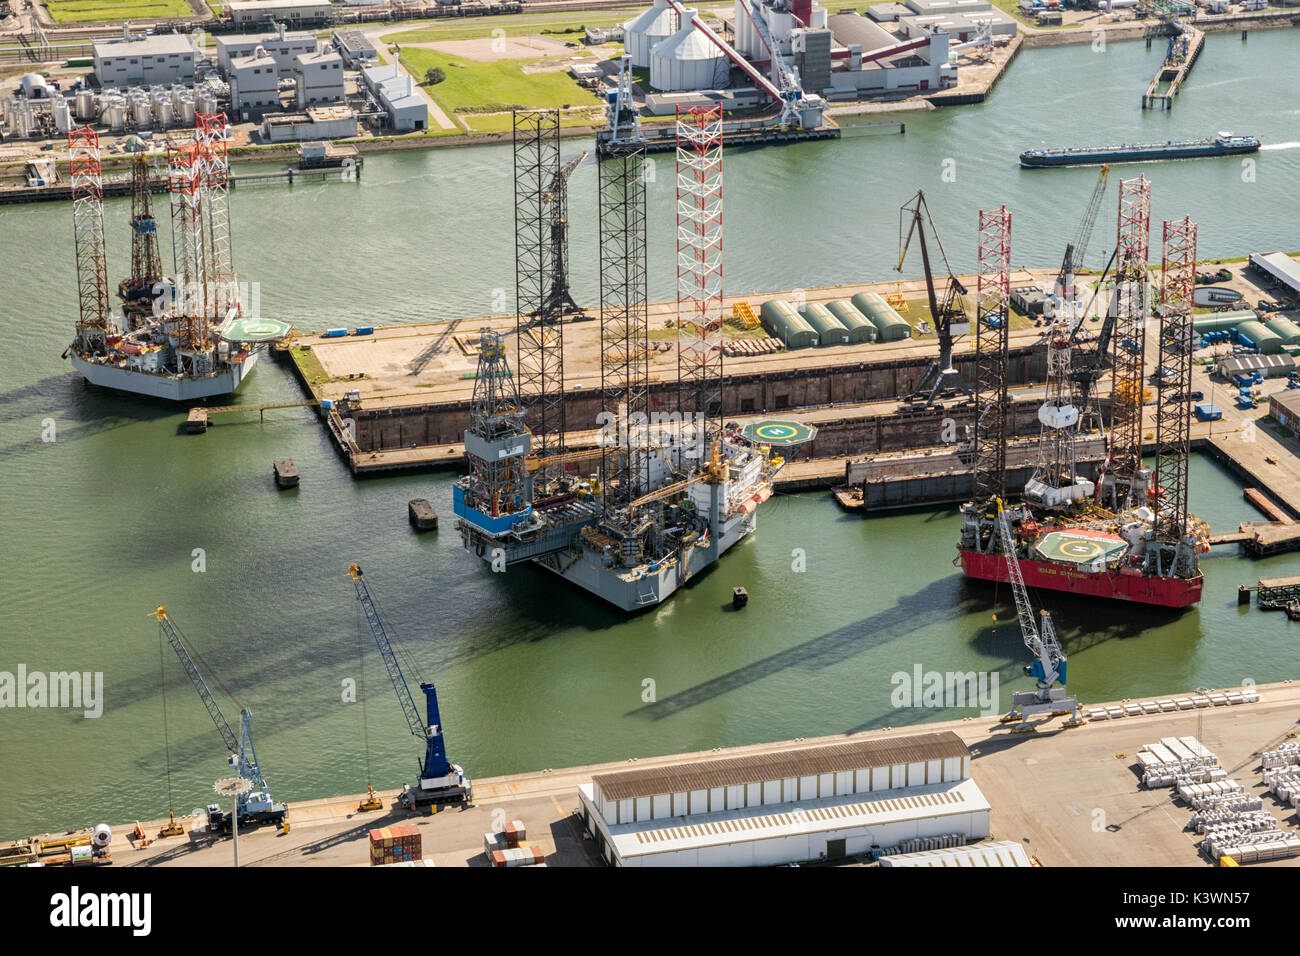 ROTTERDAM, THE NETHERLANDS - Rig platforms moored in the Port of Rotterdam. Stock Photo